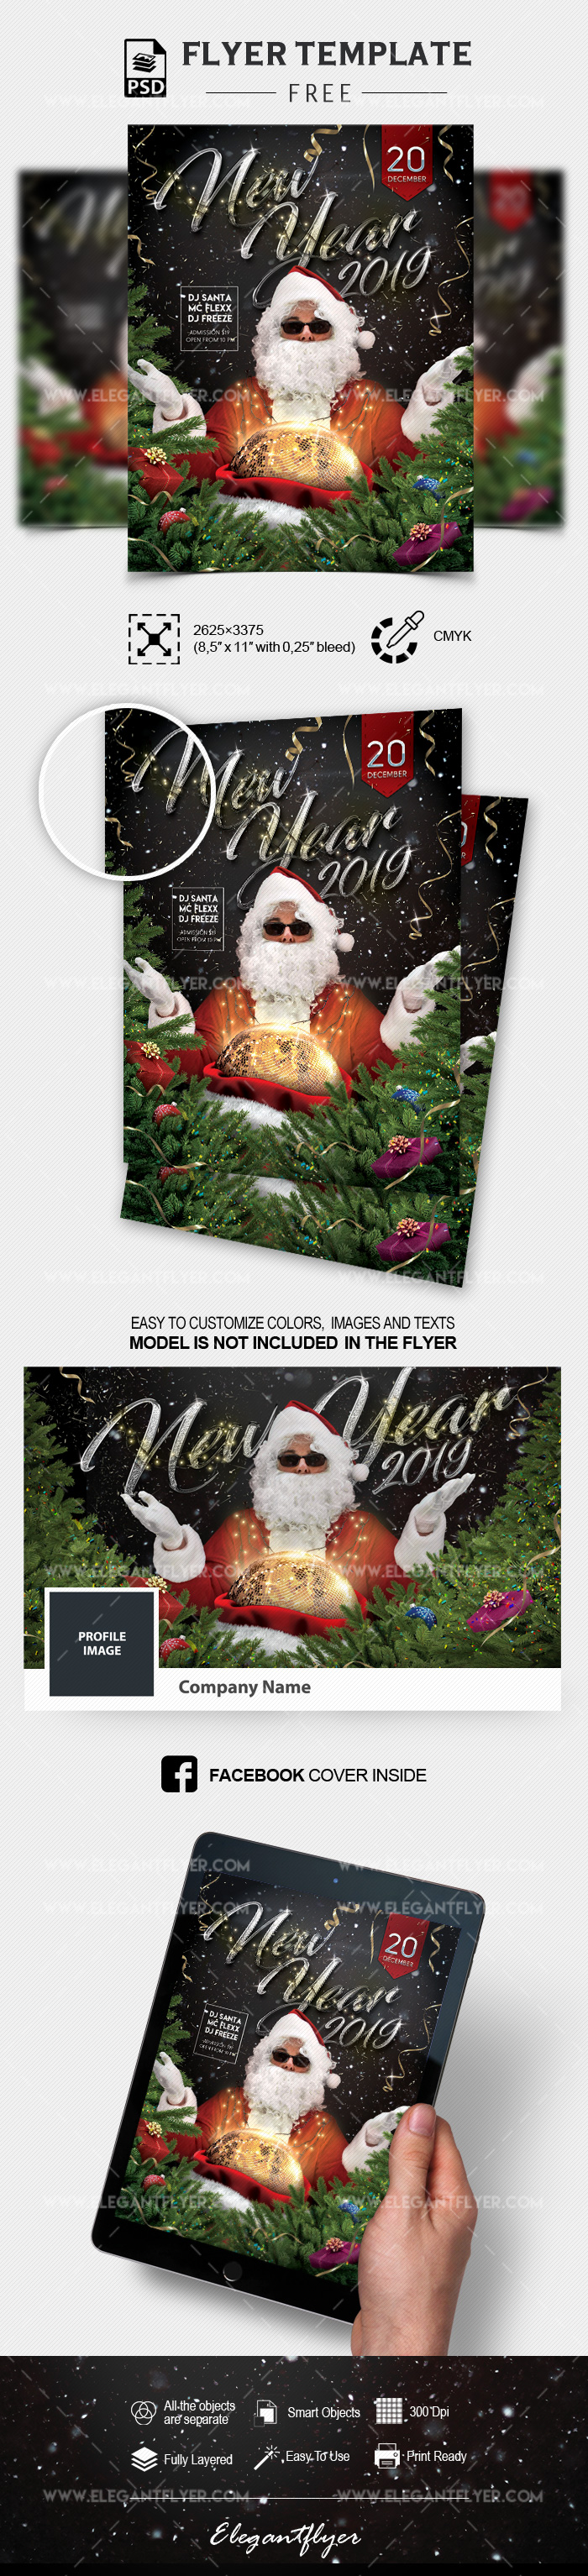 New Year's Eve – Free Flyer in PSD